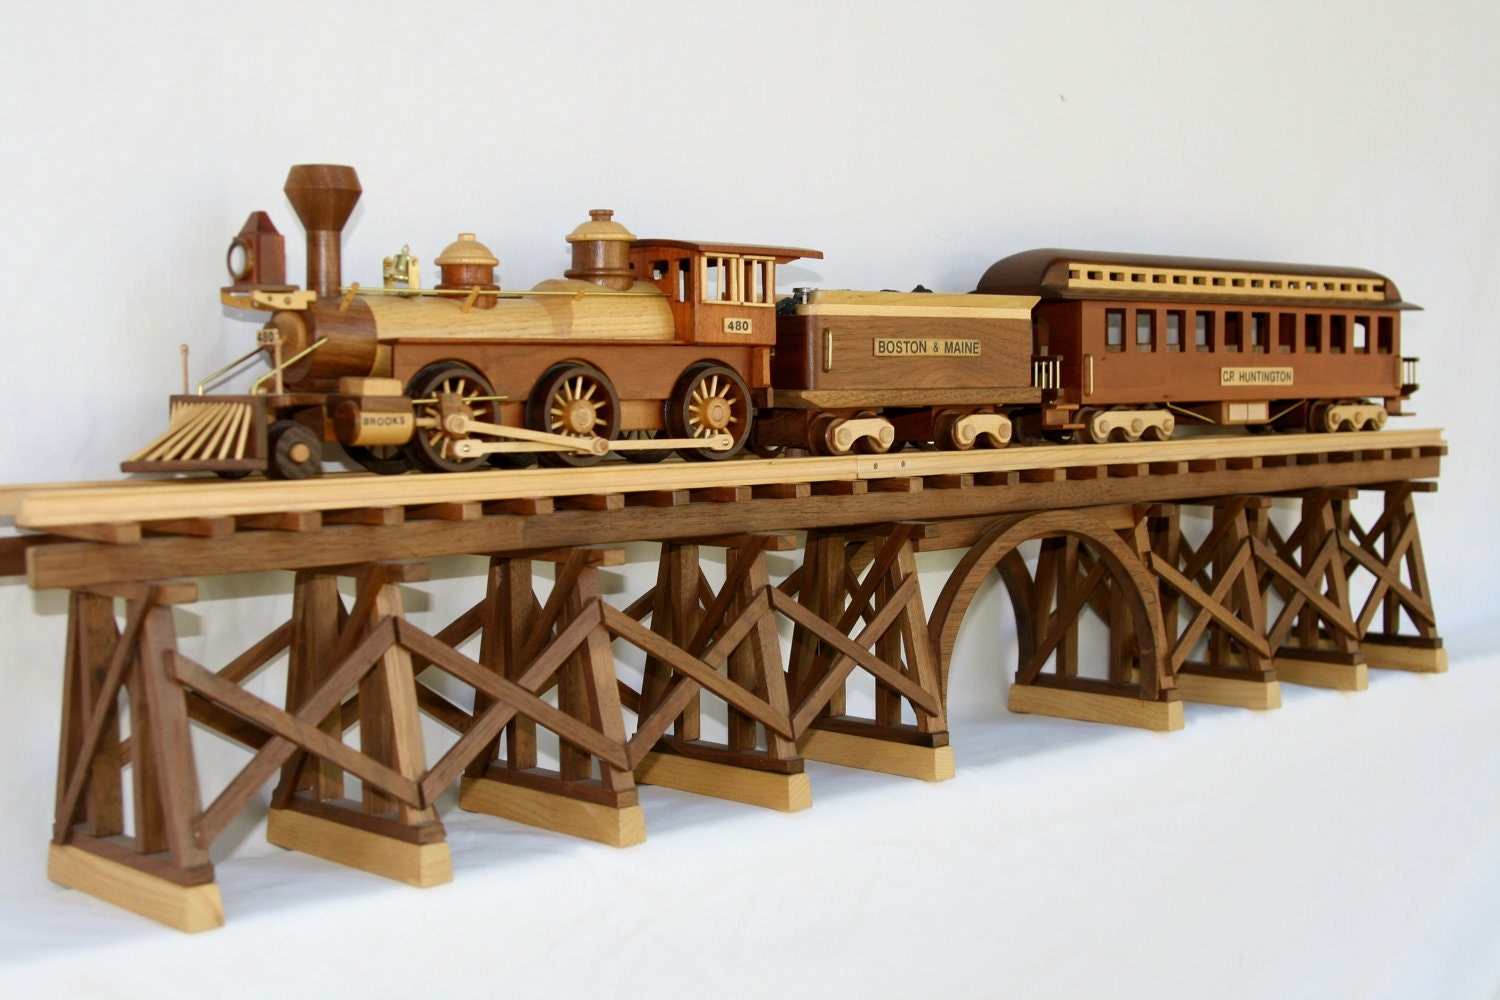 1883 brooks locomotive tender and passenger train by gbtrains for Wooden locomotive plans